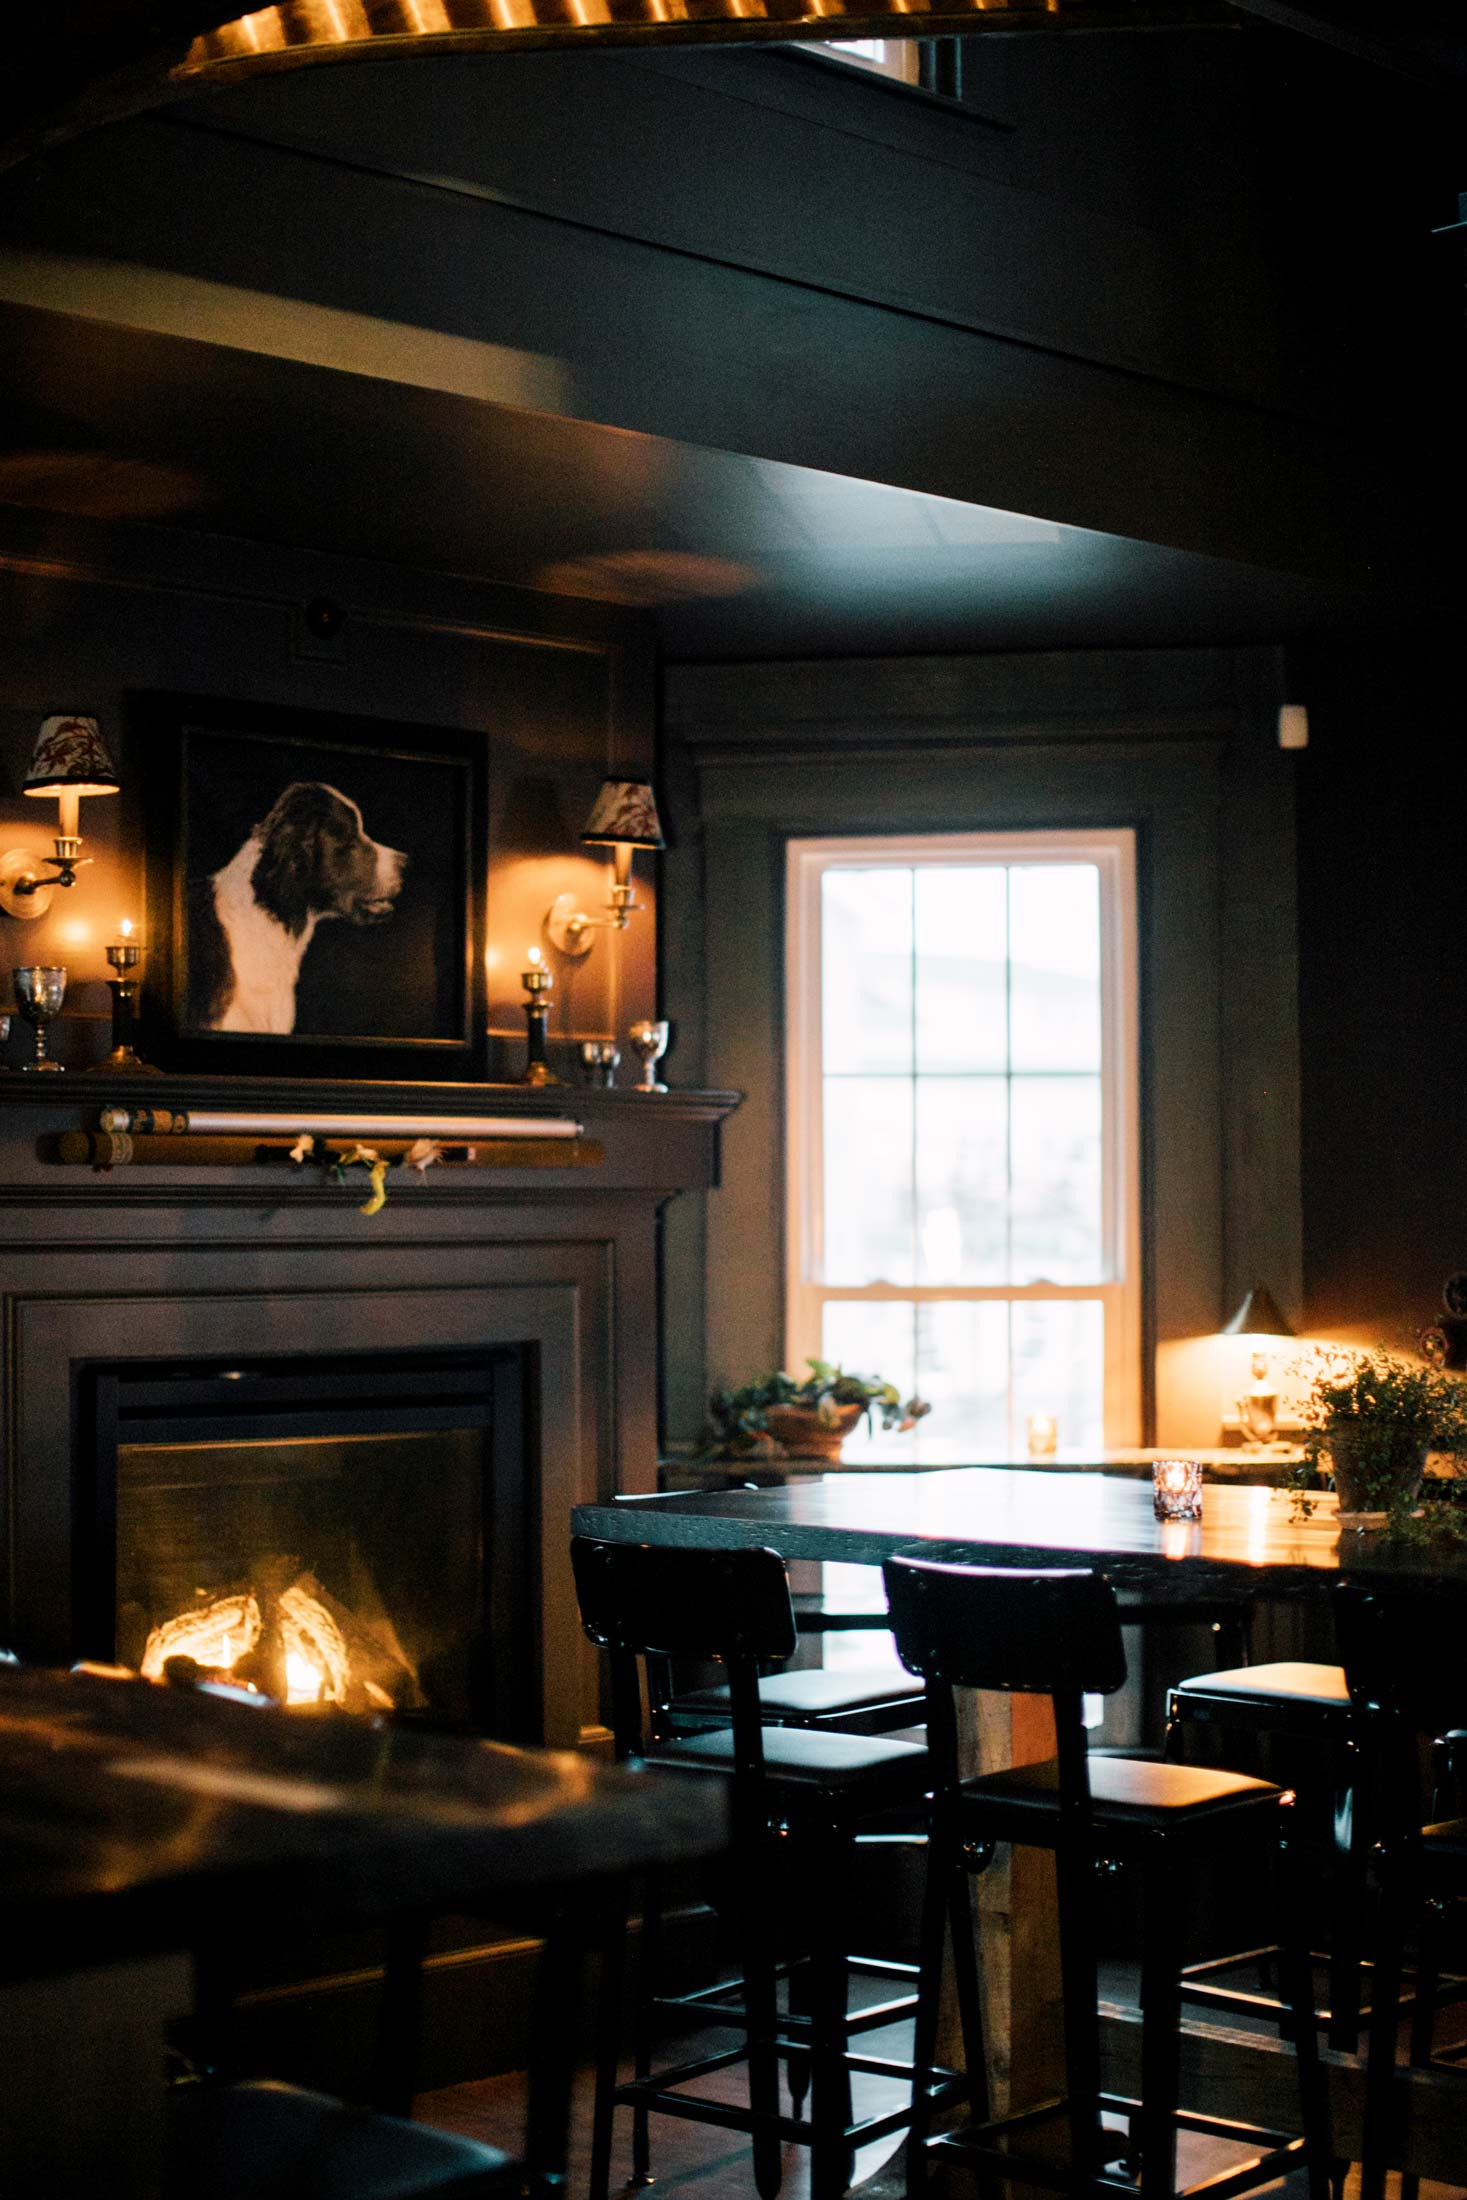 In the tasting room, vintage fly rods in their cases decorate the mantelpiece. The tables are made from old cask wood by River Drive Cooperage, and the painting of the pointer above the mantel is by David Edward Allen.